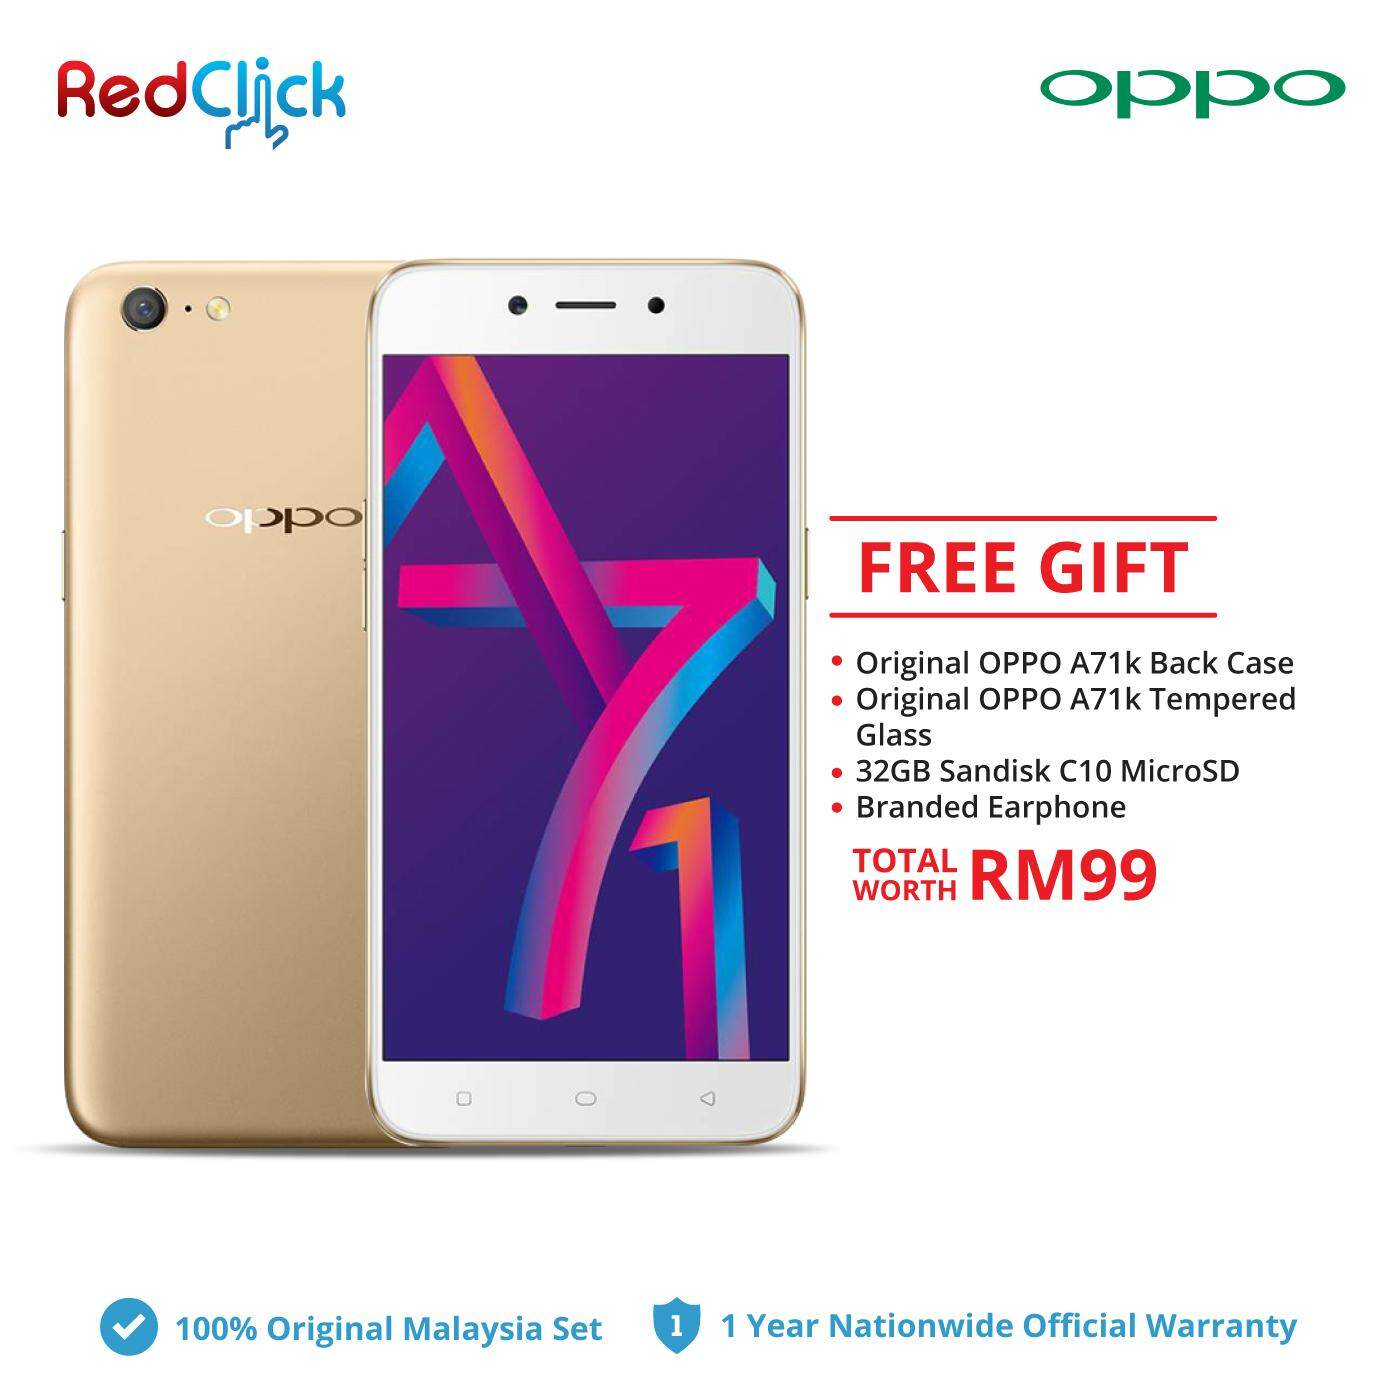 Oppo A71k Cph1801 2gb 16gb 4 Free Gift Worth Rm 99 Malaysia A37 New 4g 5 Inch Ram Rom